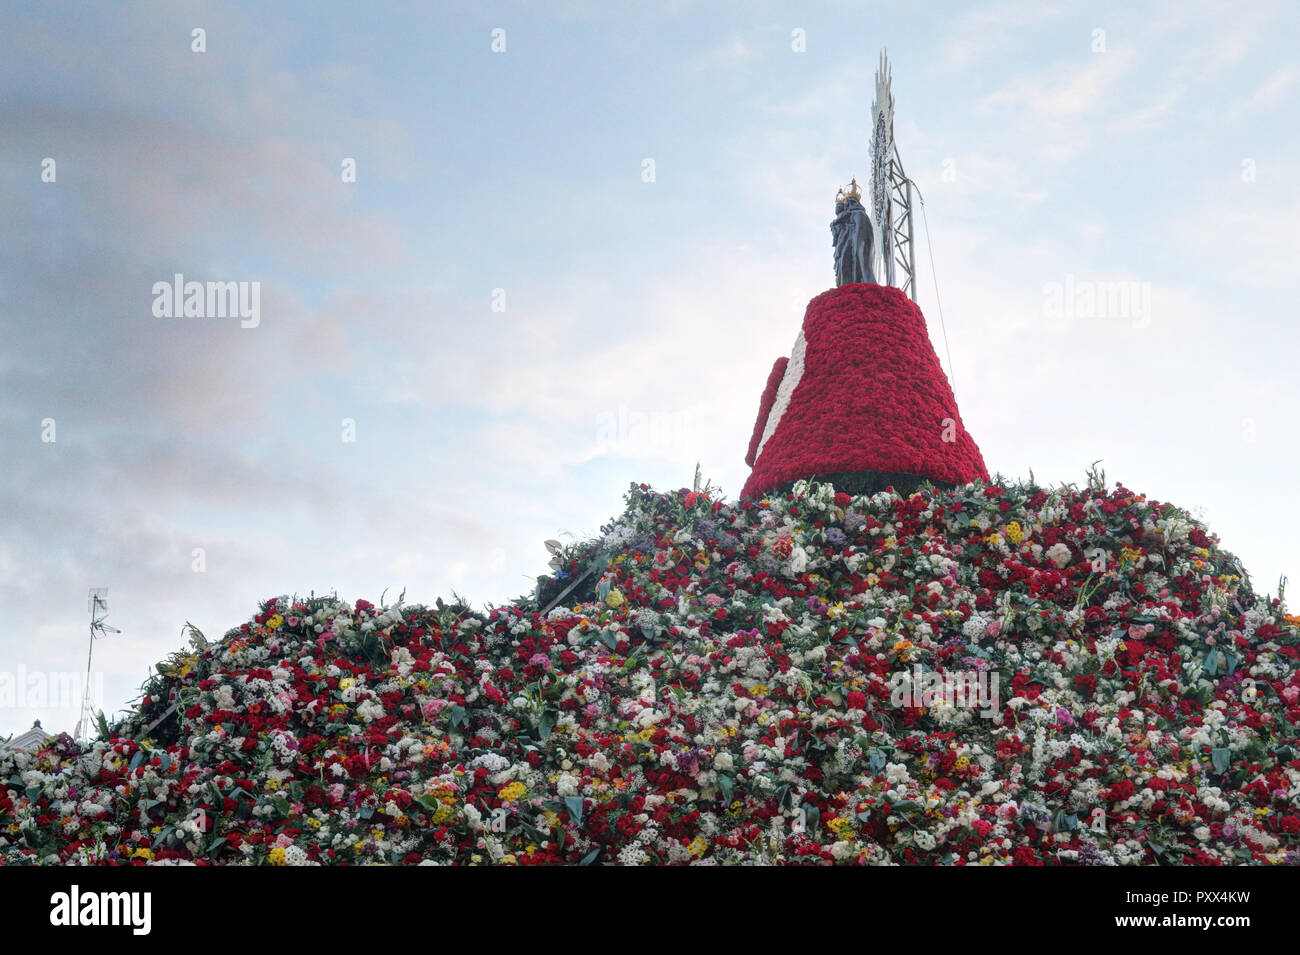 The traditional flowers offering hill and relics in the Pilar Square (Plaza del Pilar) during Pilar 2018 festival - Stock Image